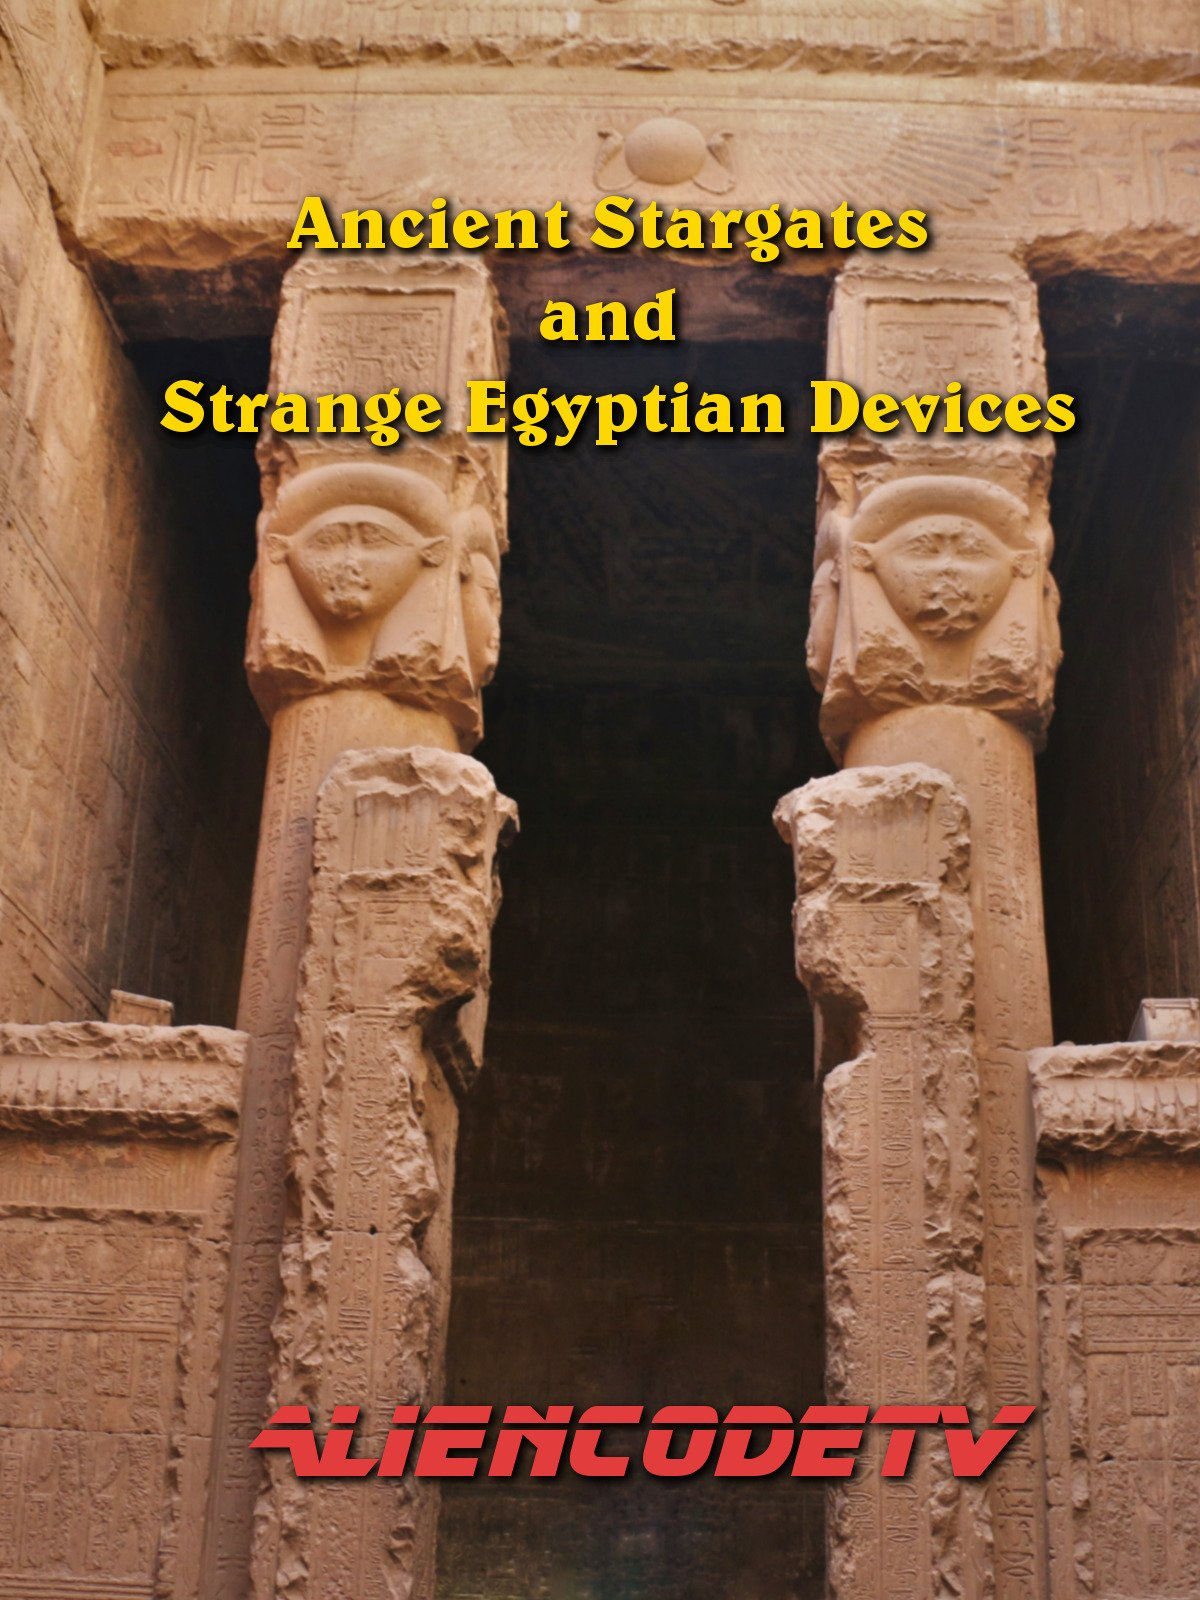 Ancient Stargates and Strange Egyptian Devices - Alien Code TV